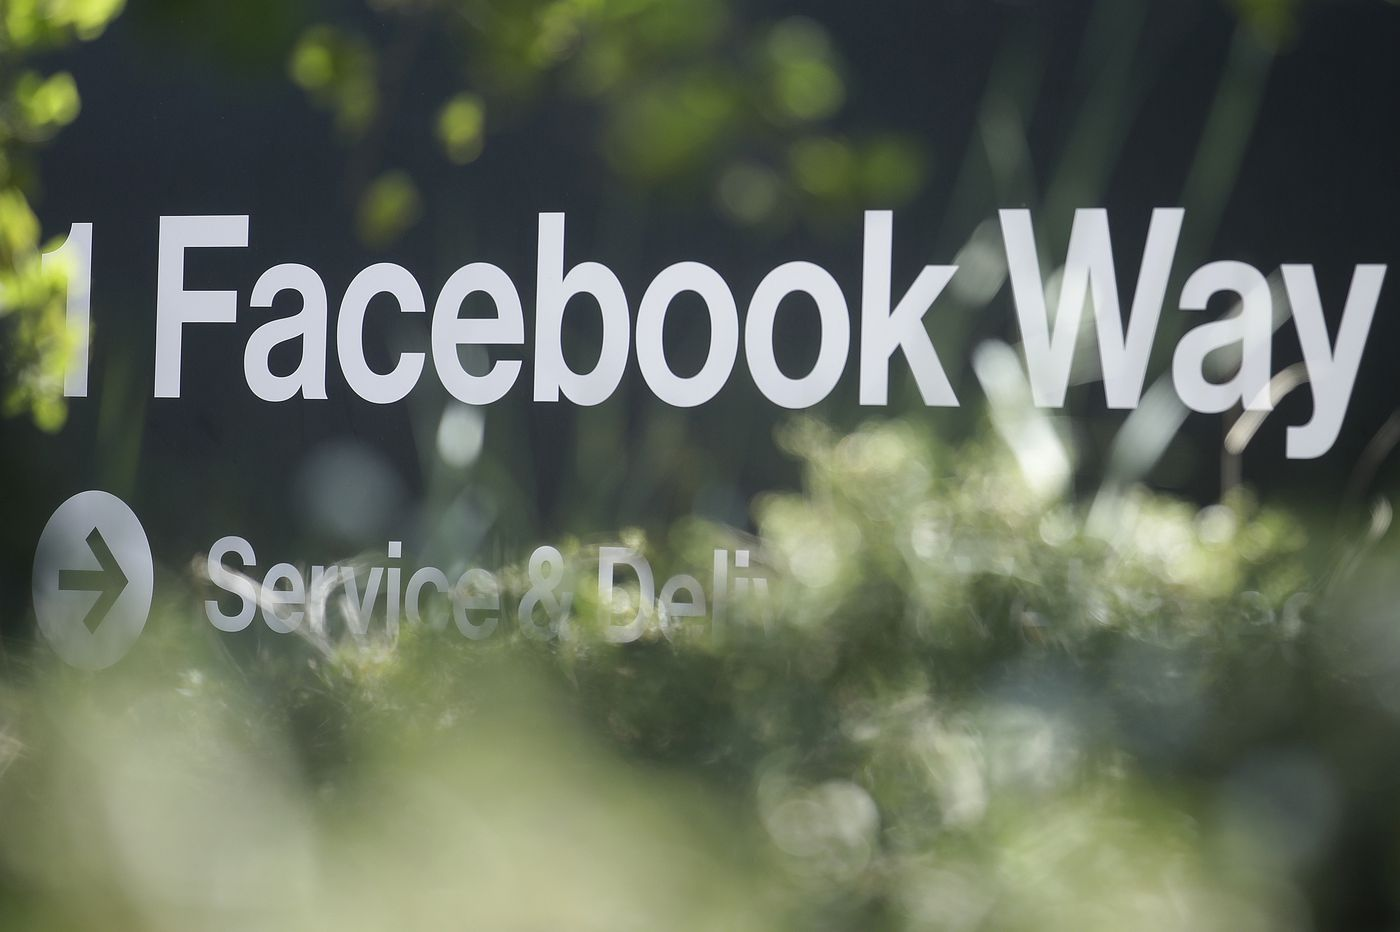 As Facebook changes the way it evaluates video, here's how small businesses need to react